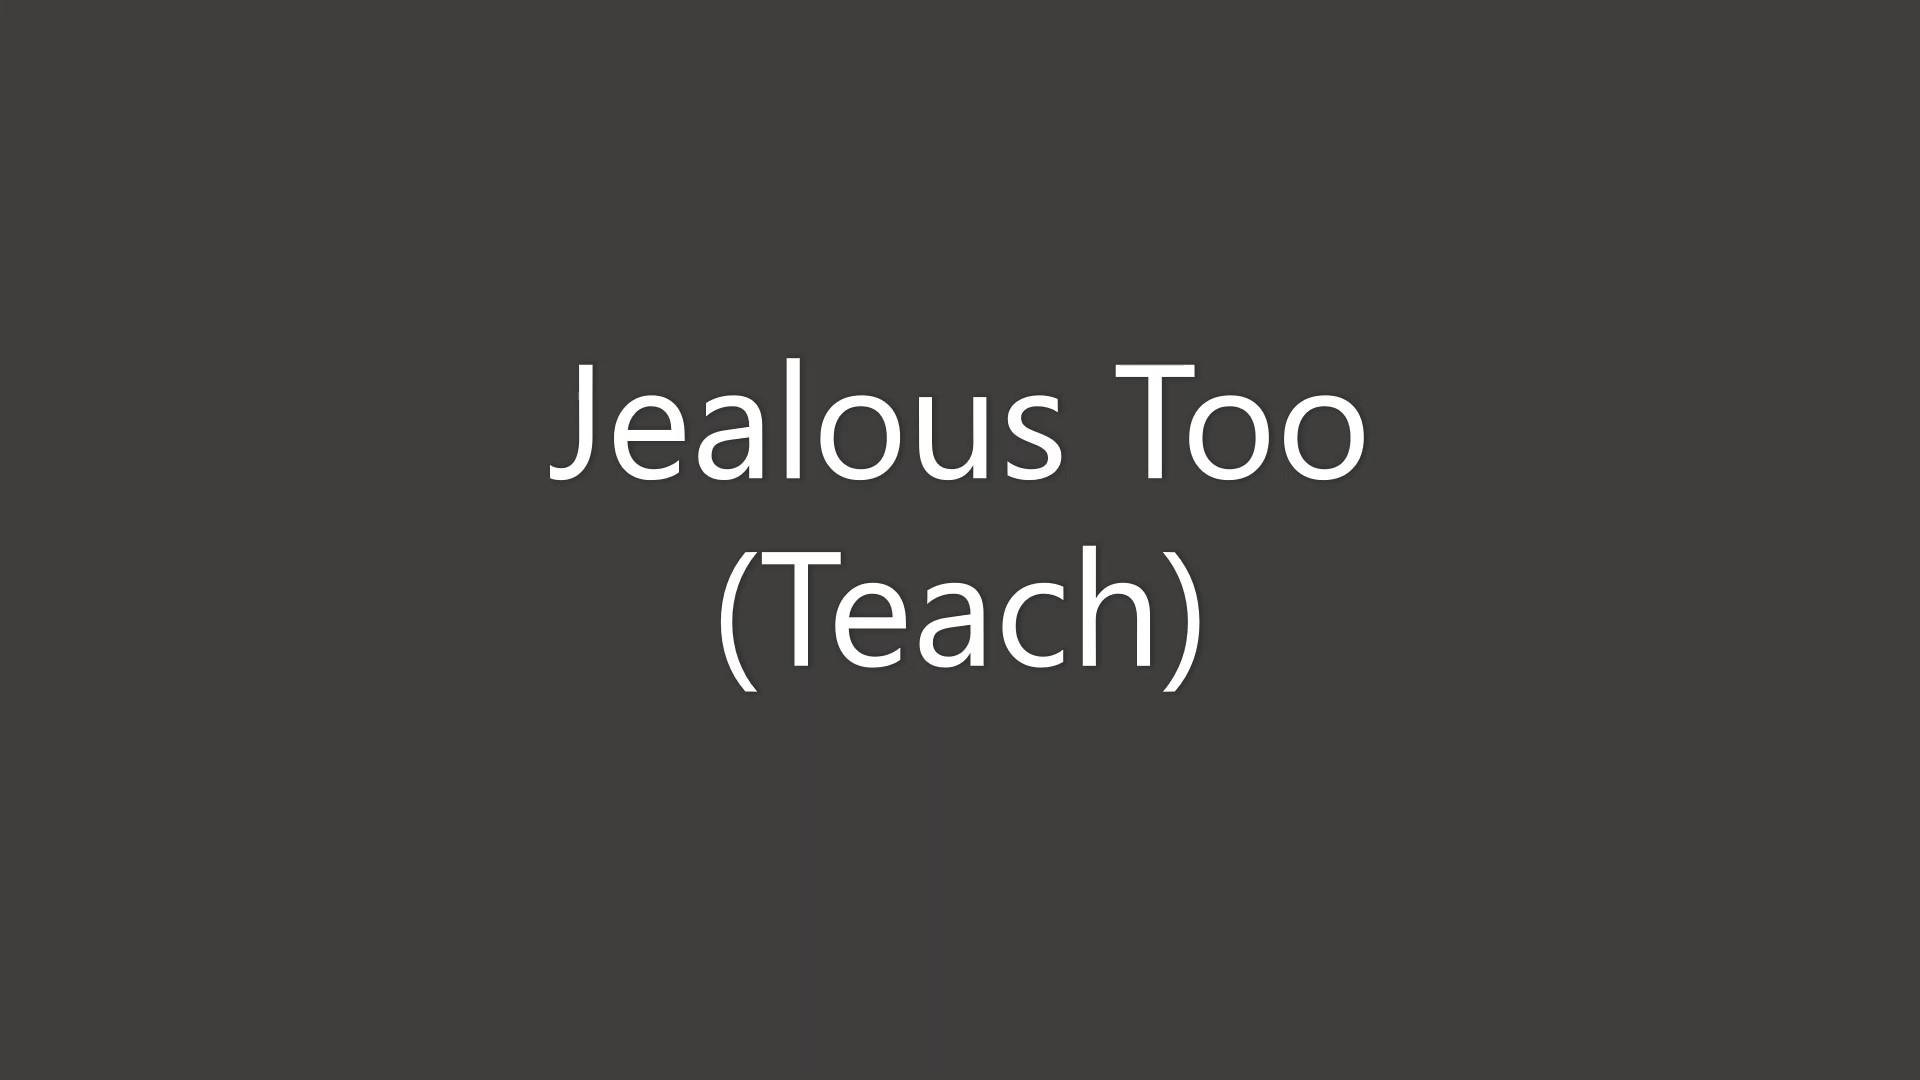 Jealous Too Teach